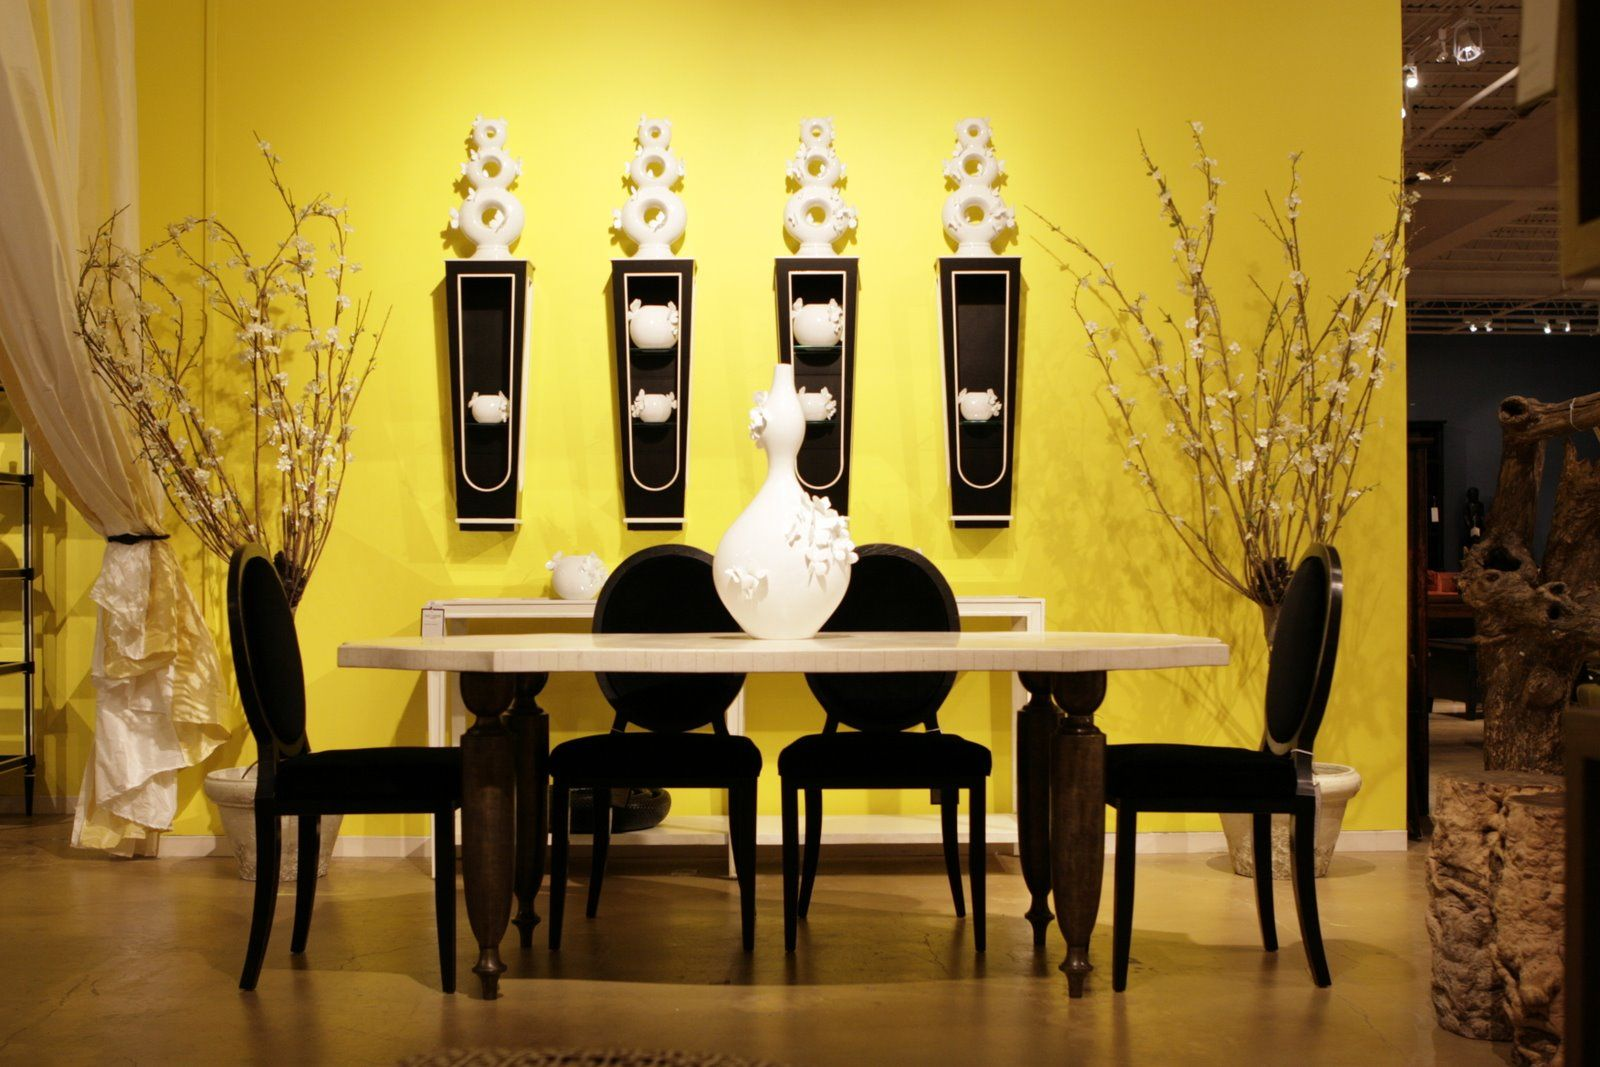 Black Walls Minimalist Dining Room With Yellow Wall